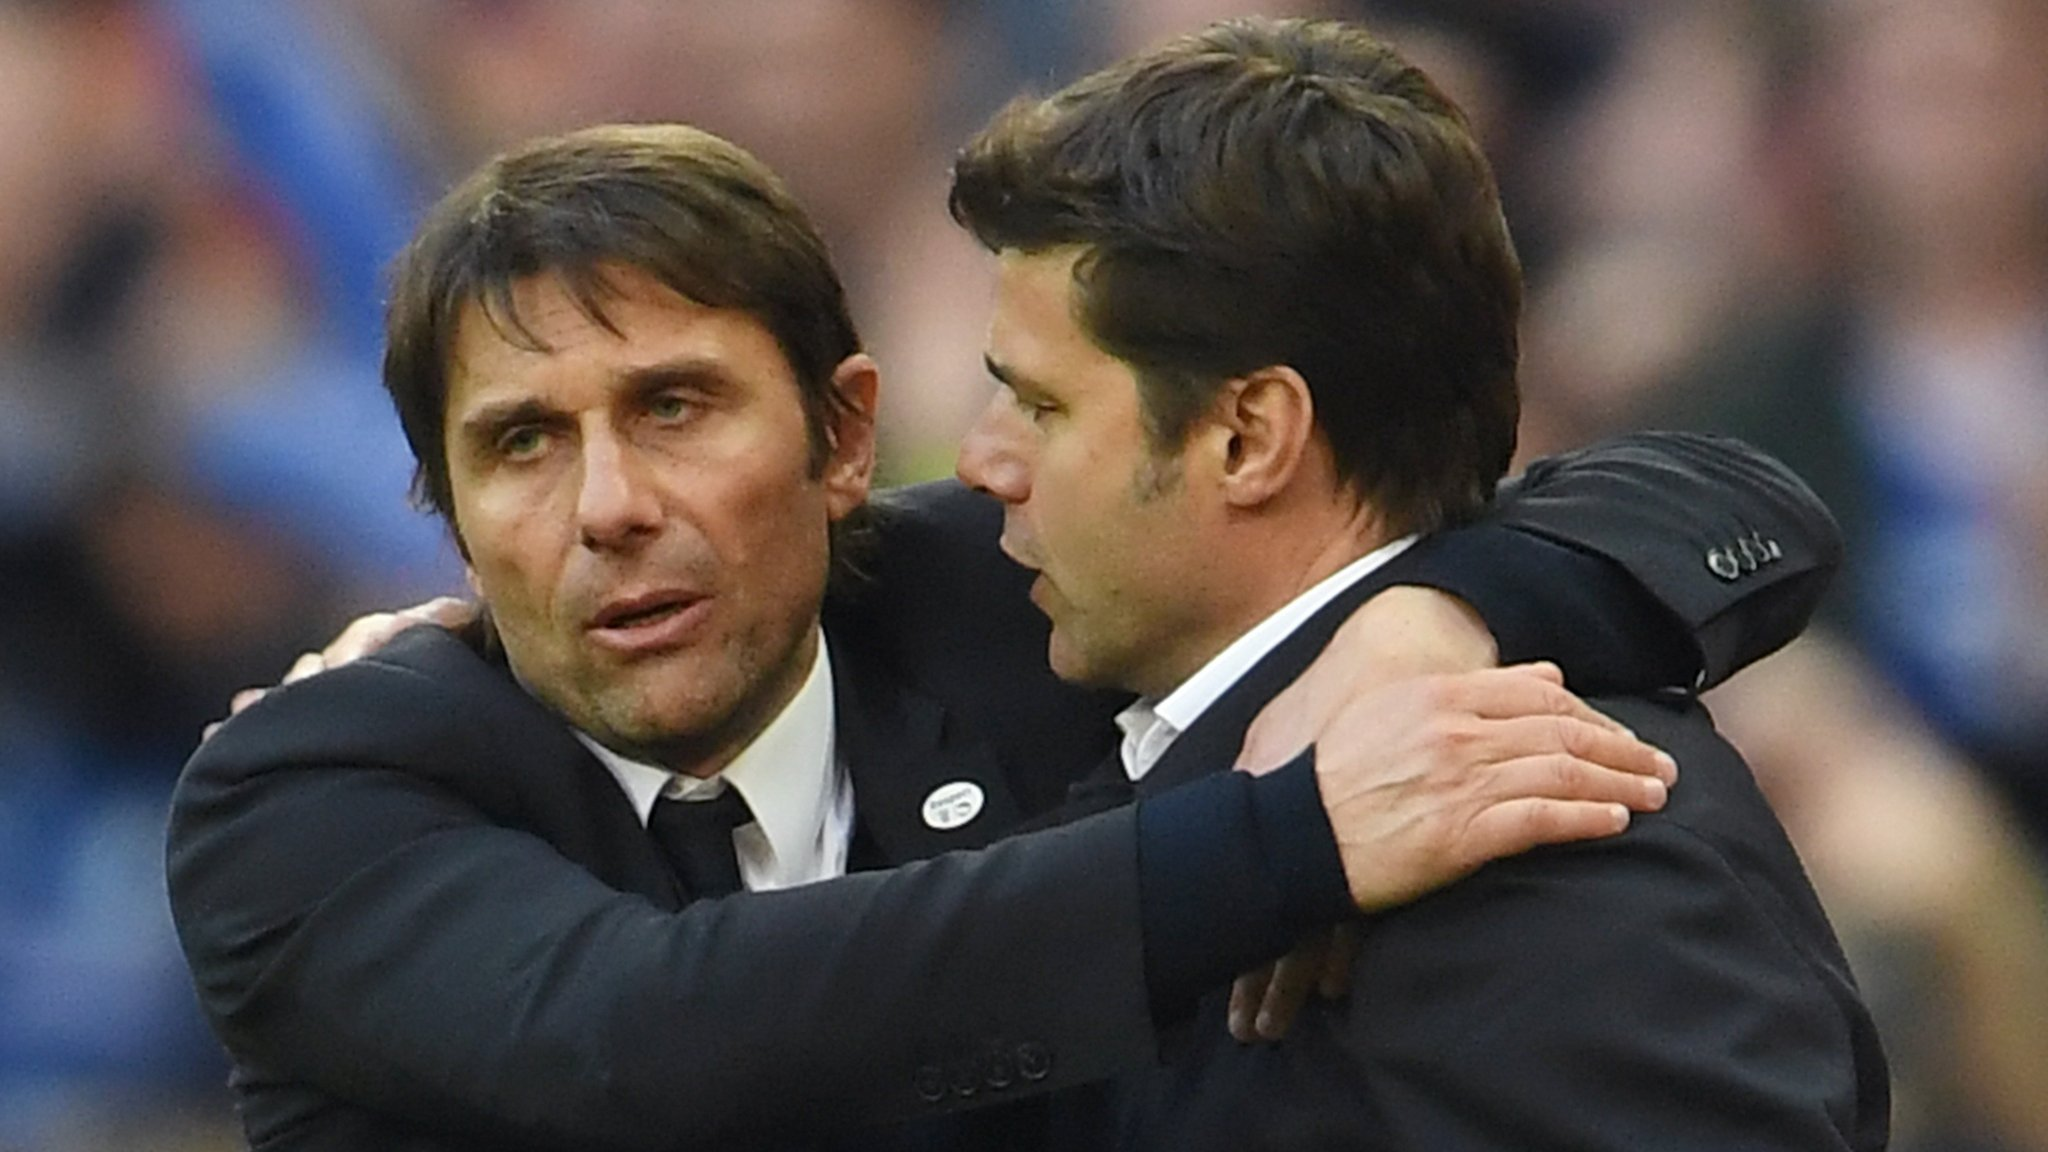 Chelsea & Spurs should kick off at same time - Conte